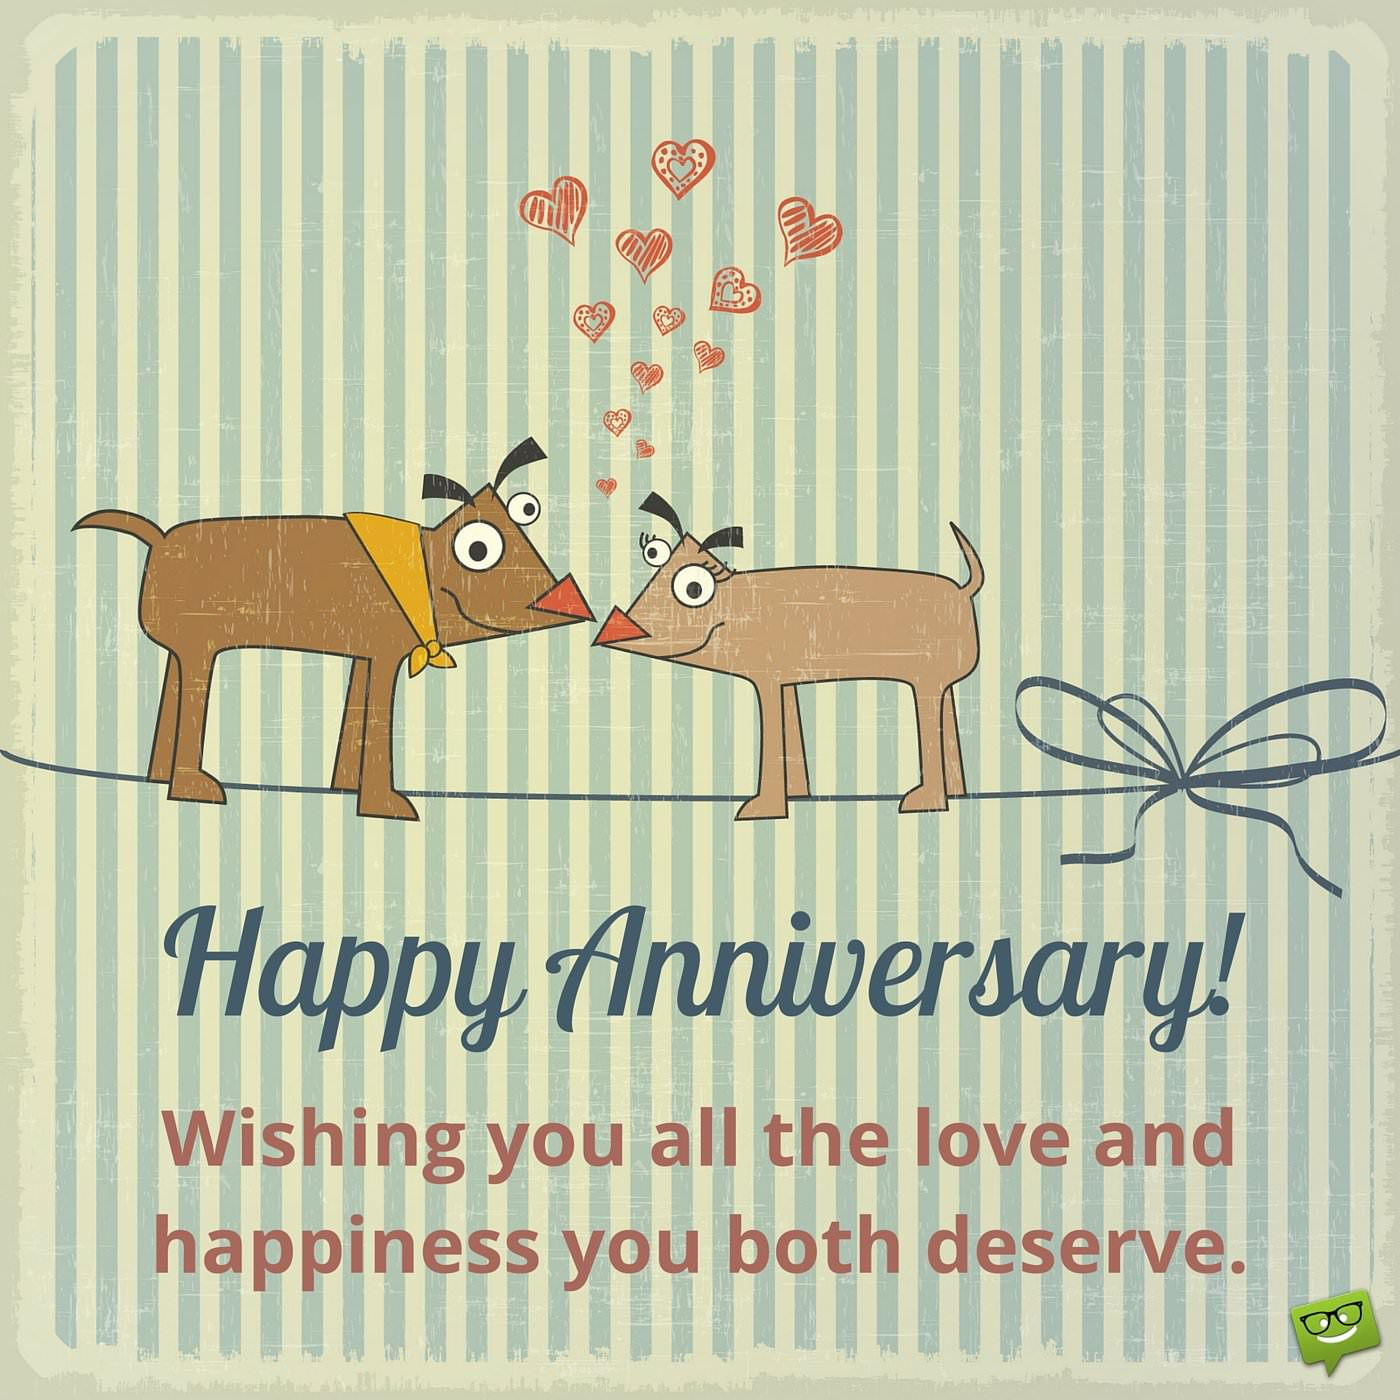 Wedding Anniversary Wishes For Someone You Know